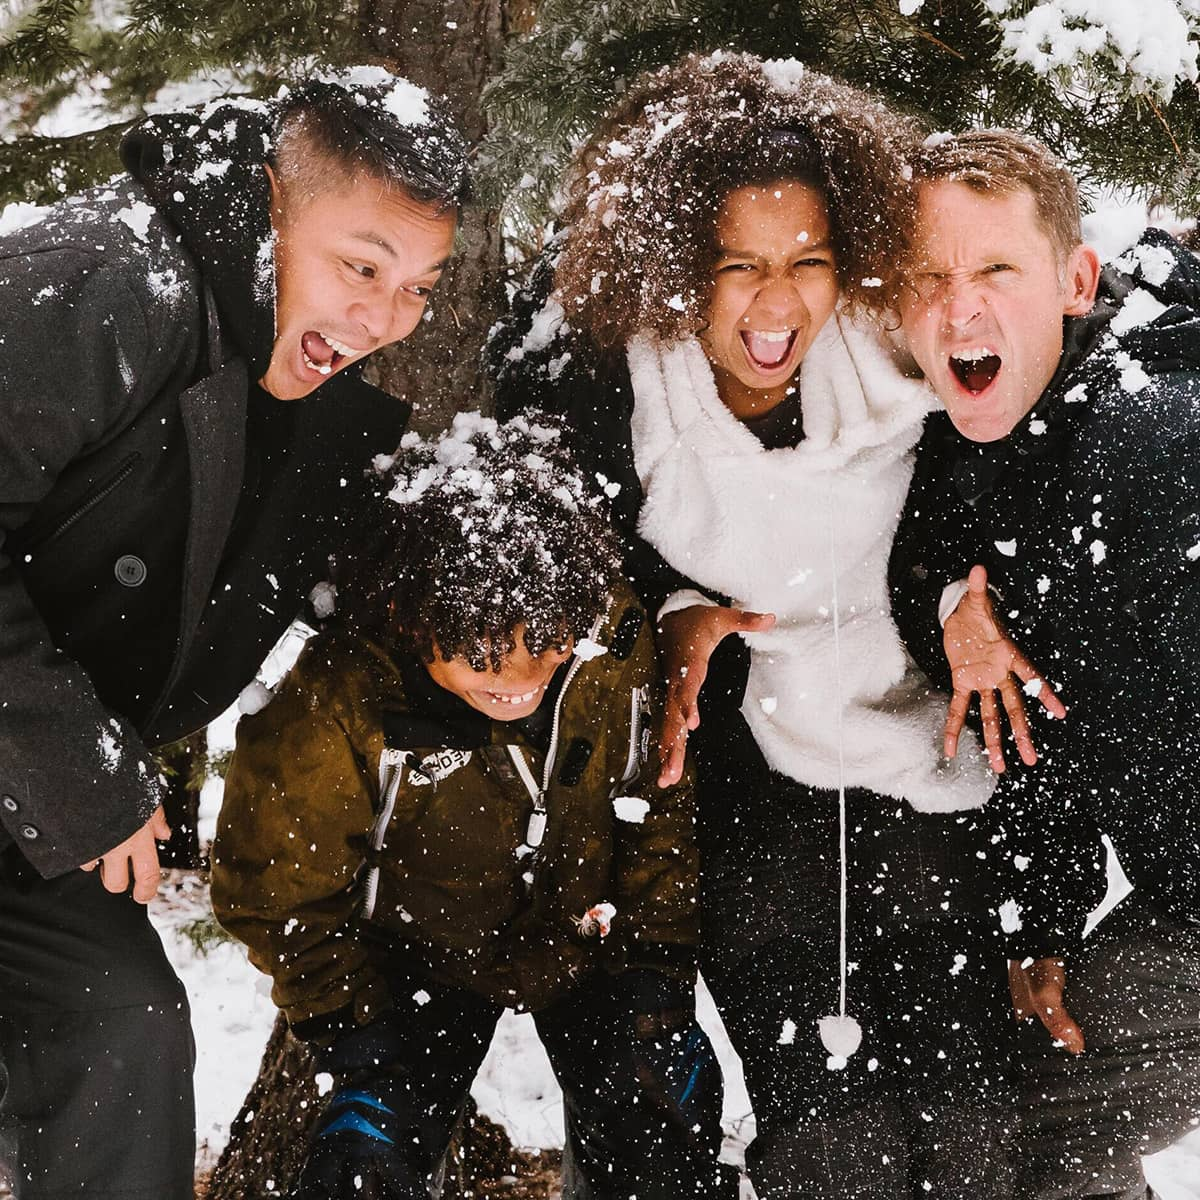 Kids screaming as they play in the snow